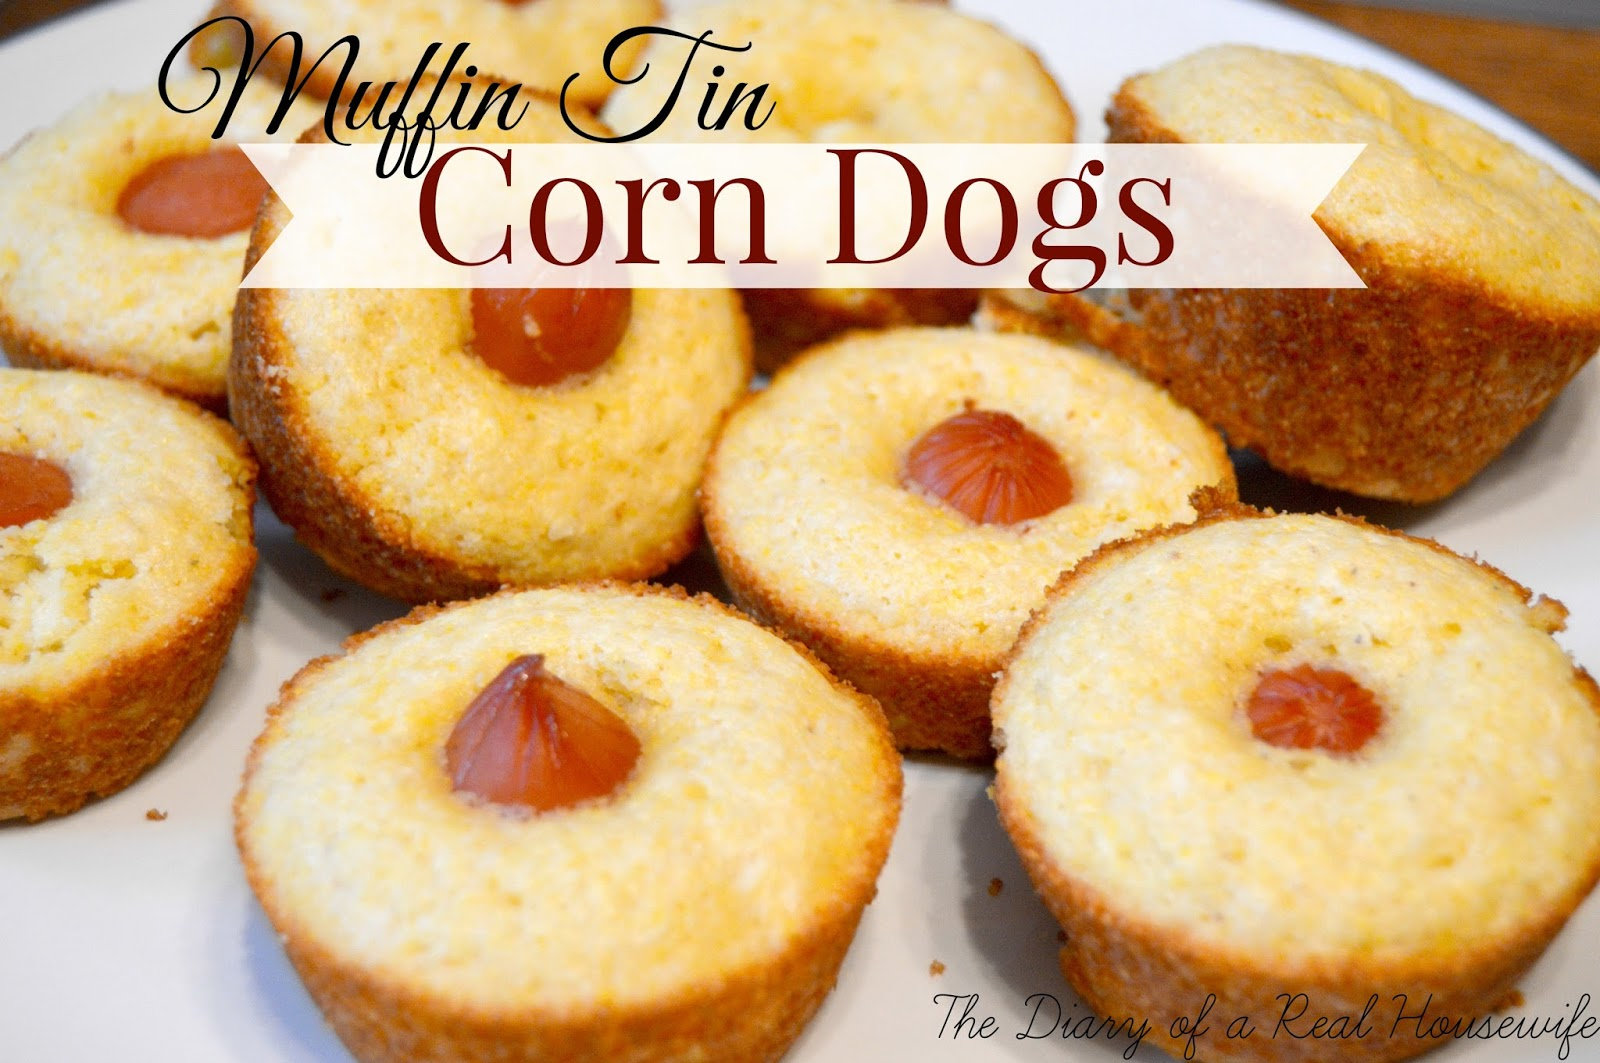 Muffin Tin Corn Dogs from The Diary of a Real Housewife